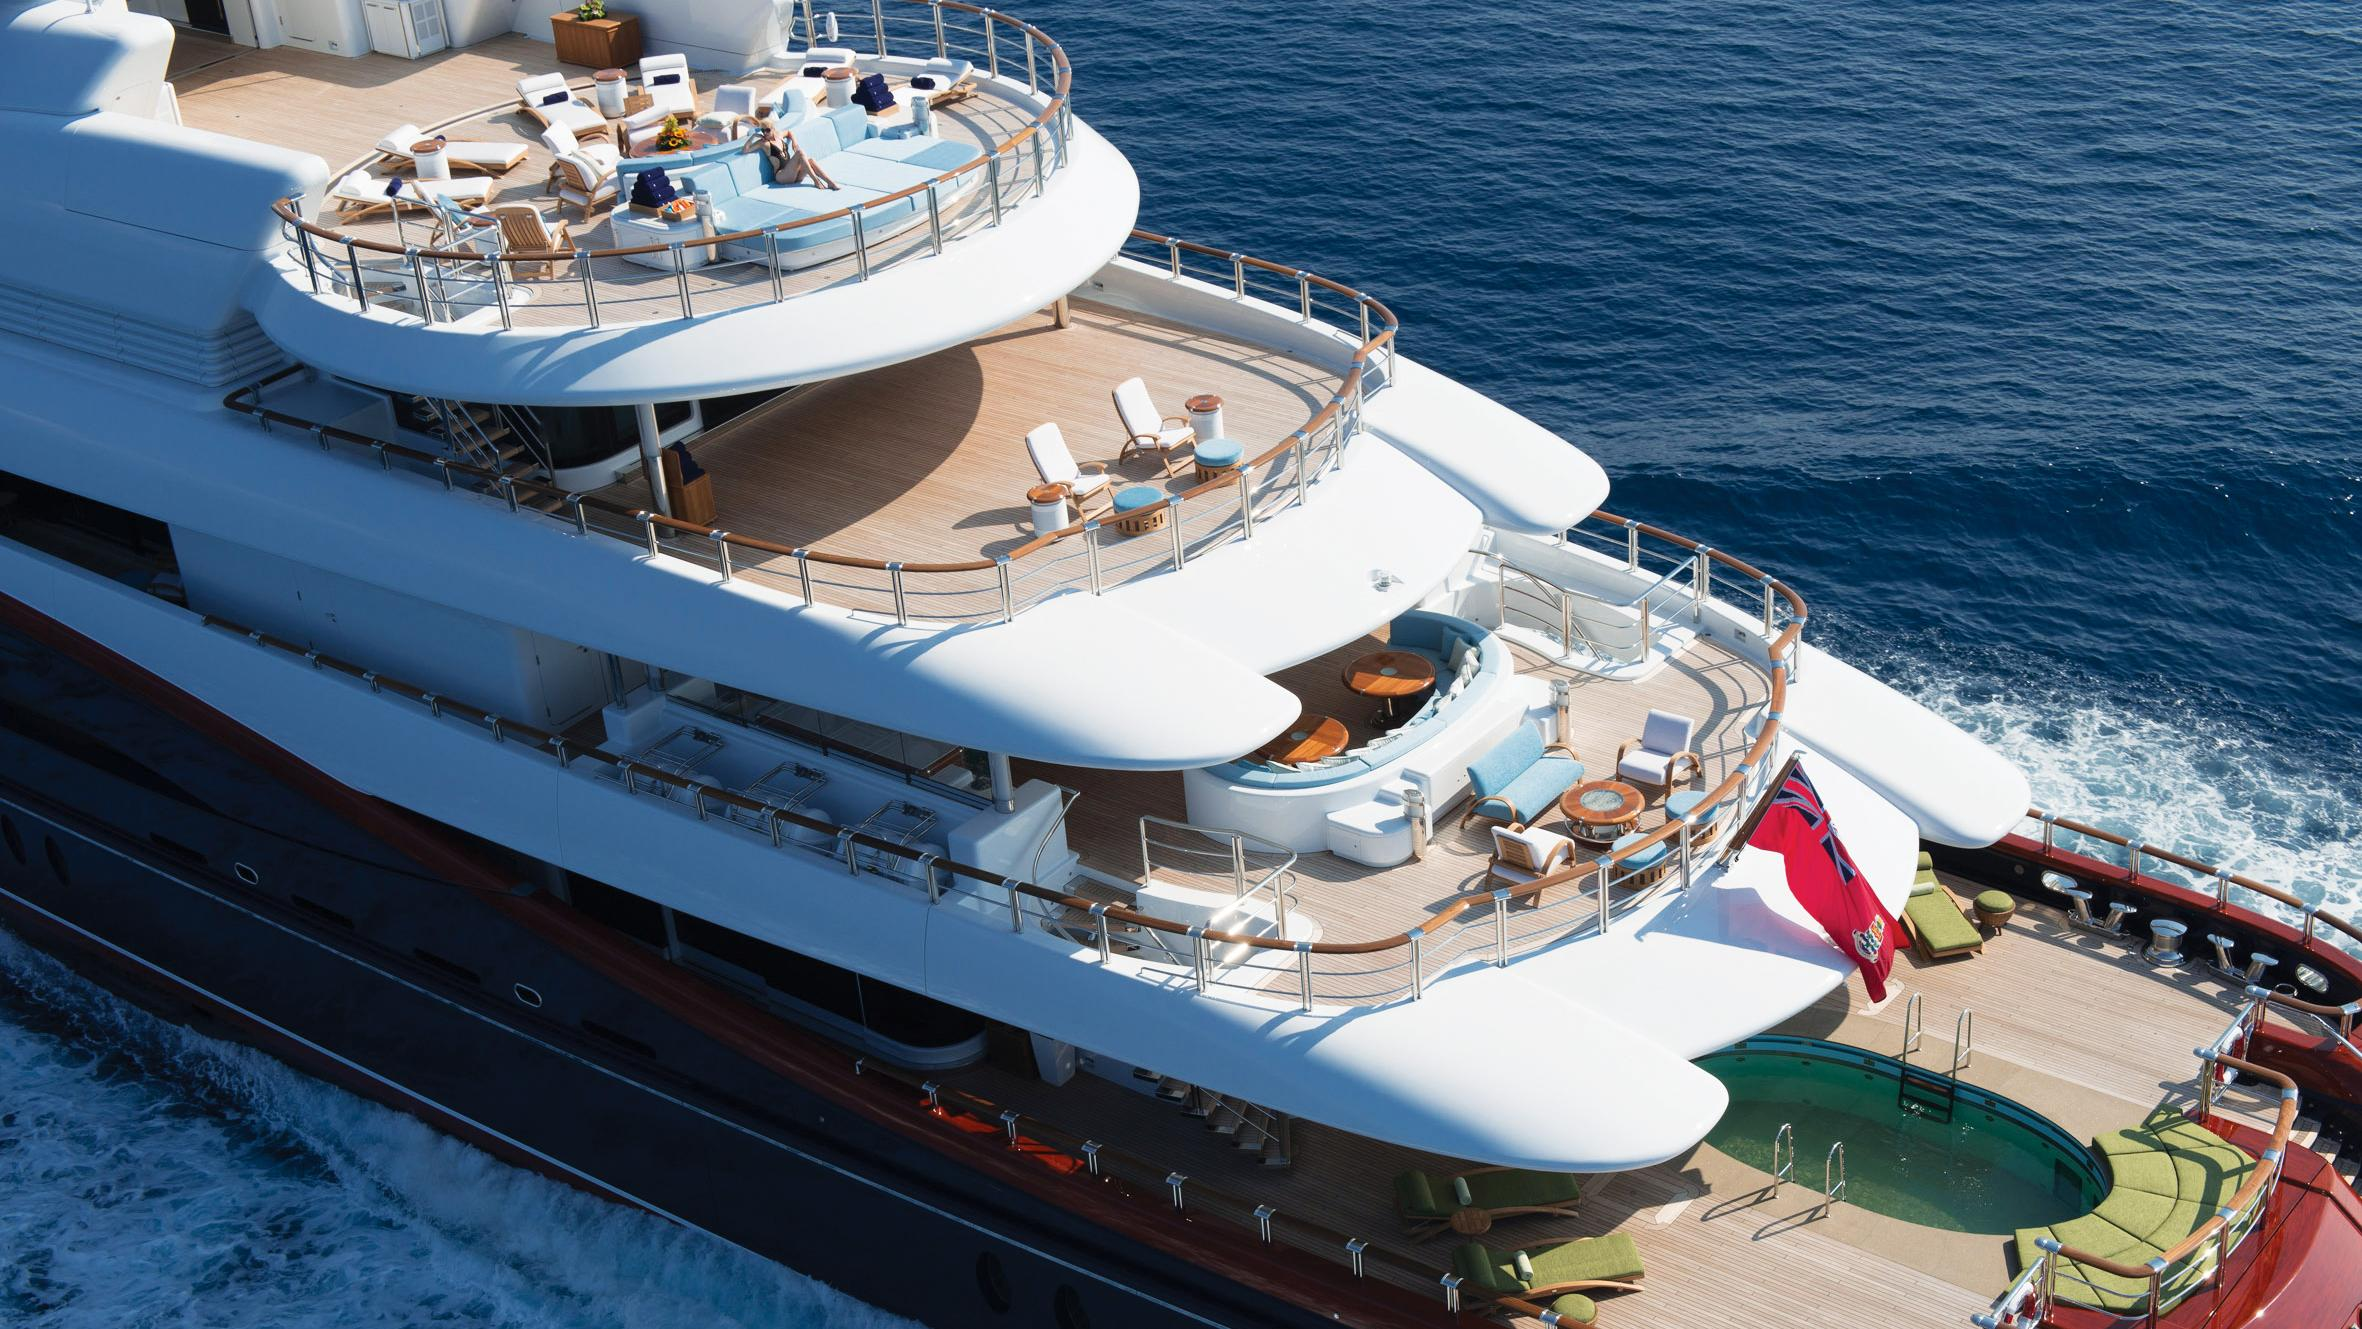 nirvana-motor-yacht-oceanco-2012-88m-profile-cruisingaft-decks